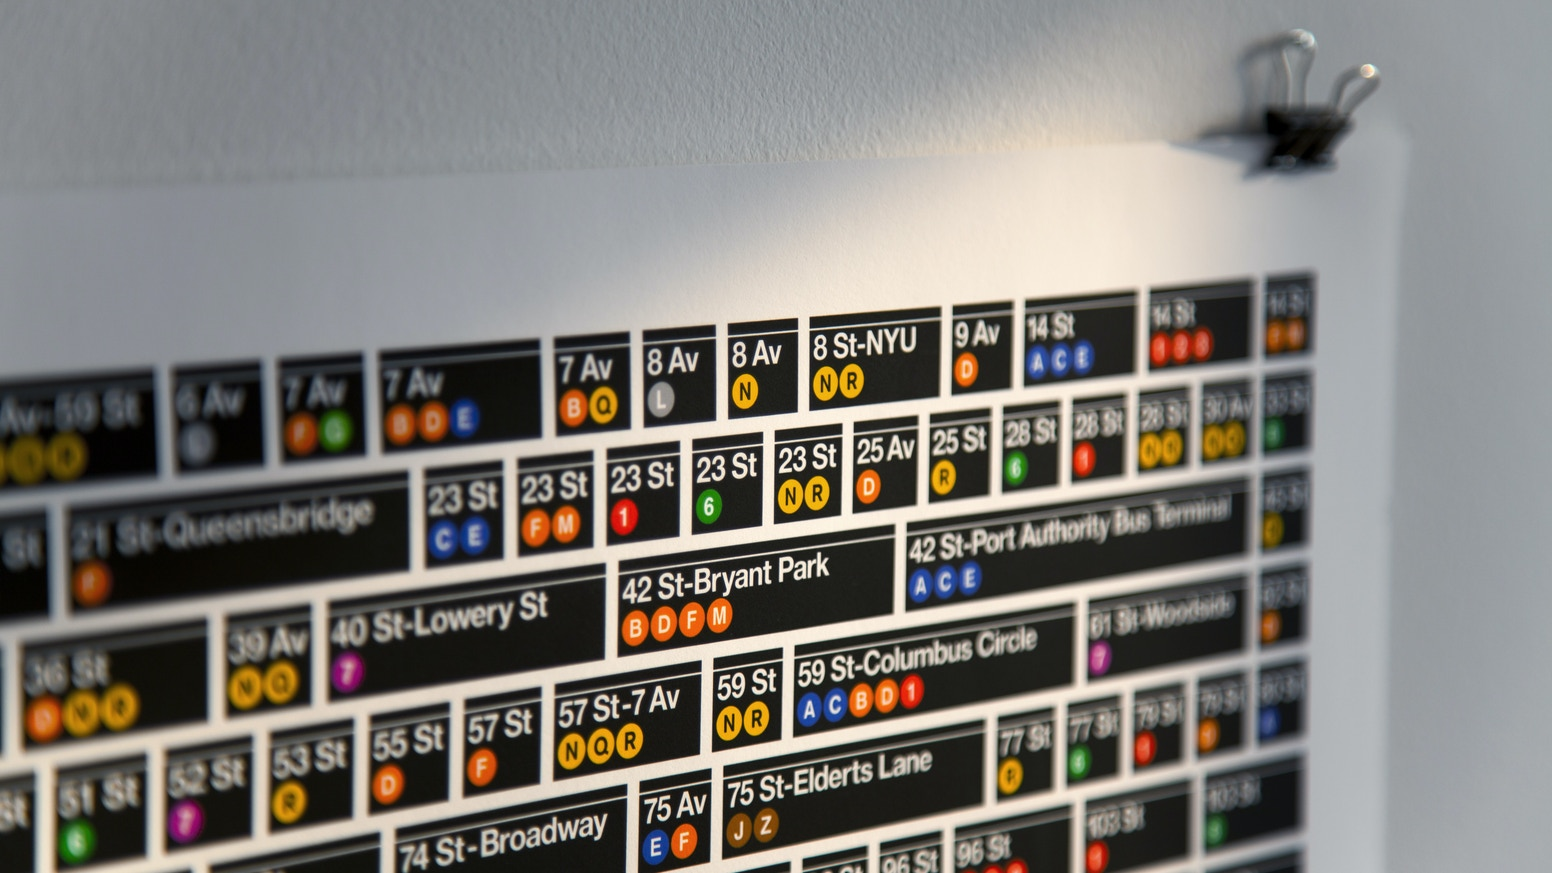 An 11 Pantone® spot color poster featuring every one of the 469 New York  City